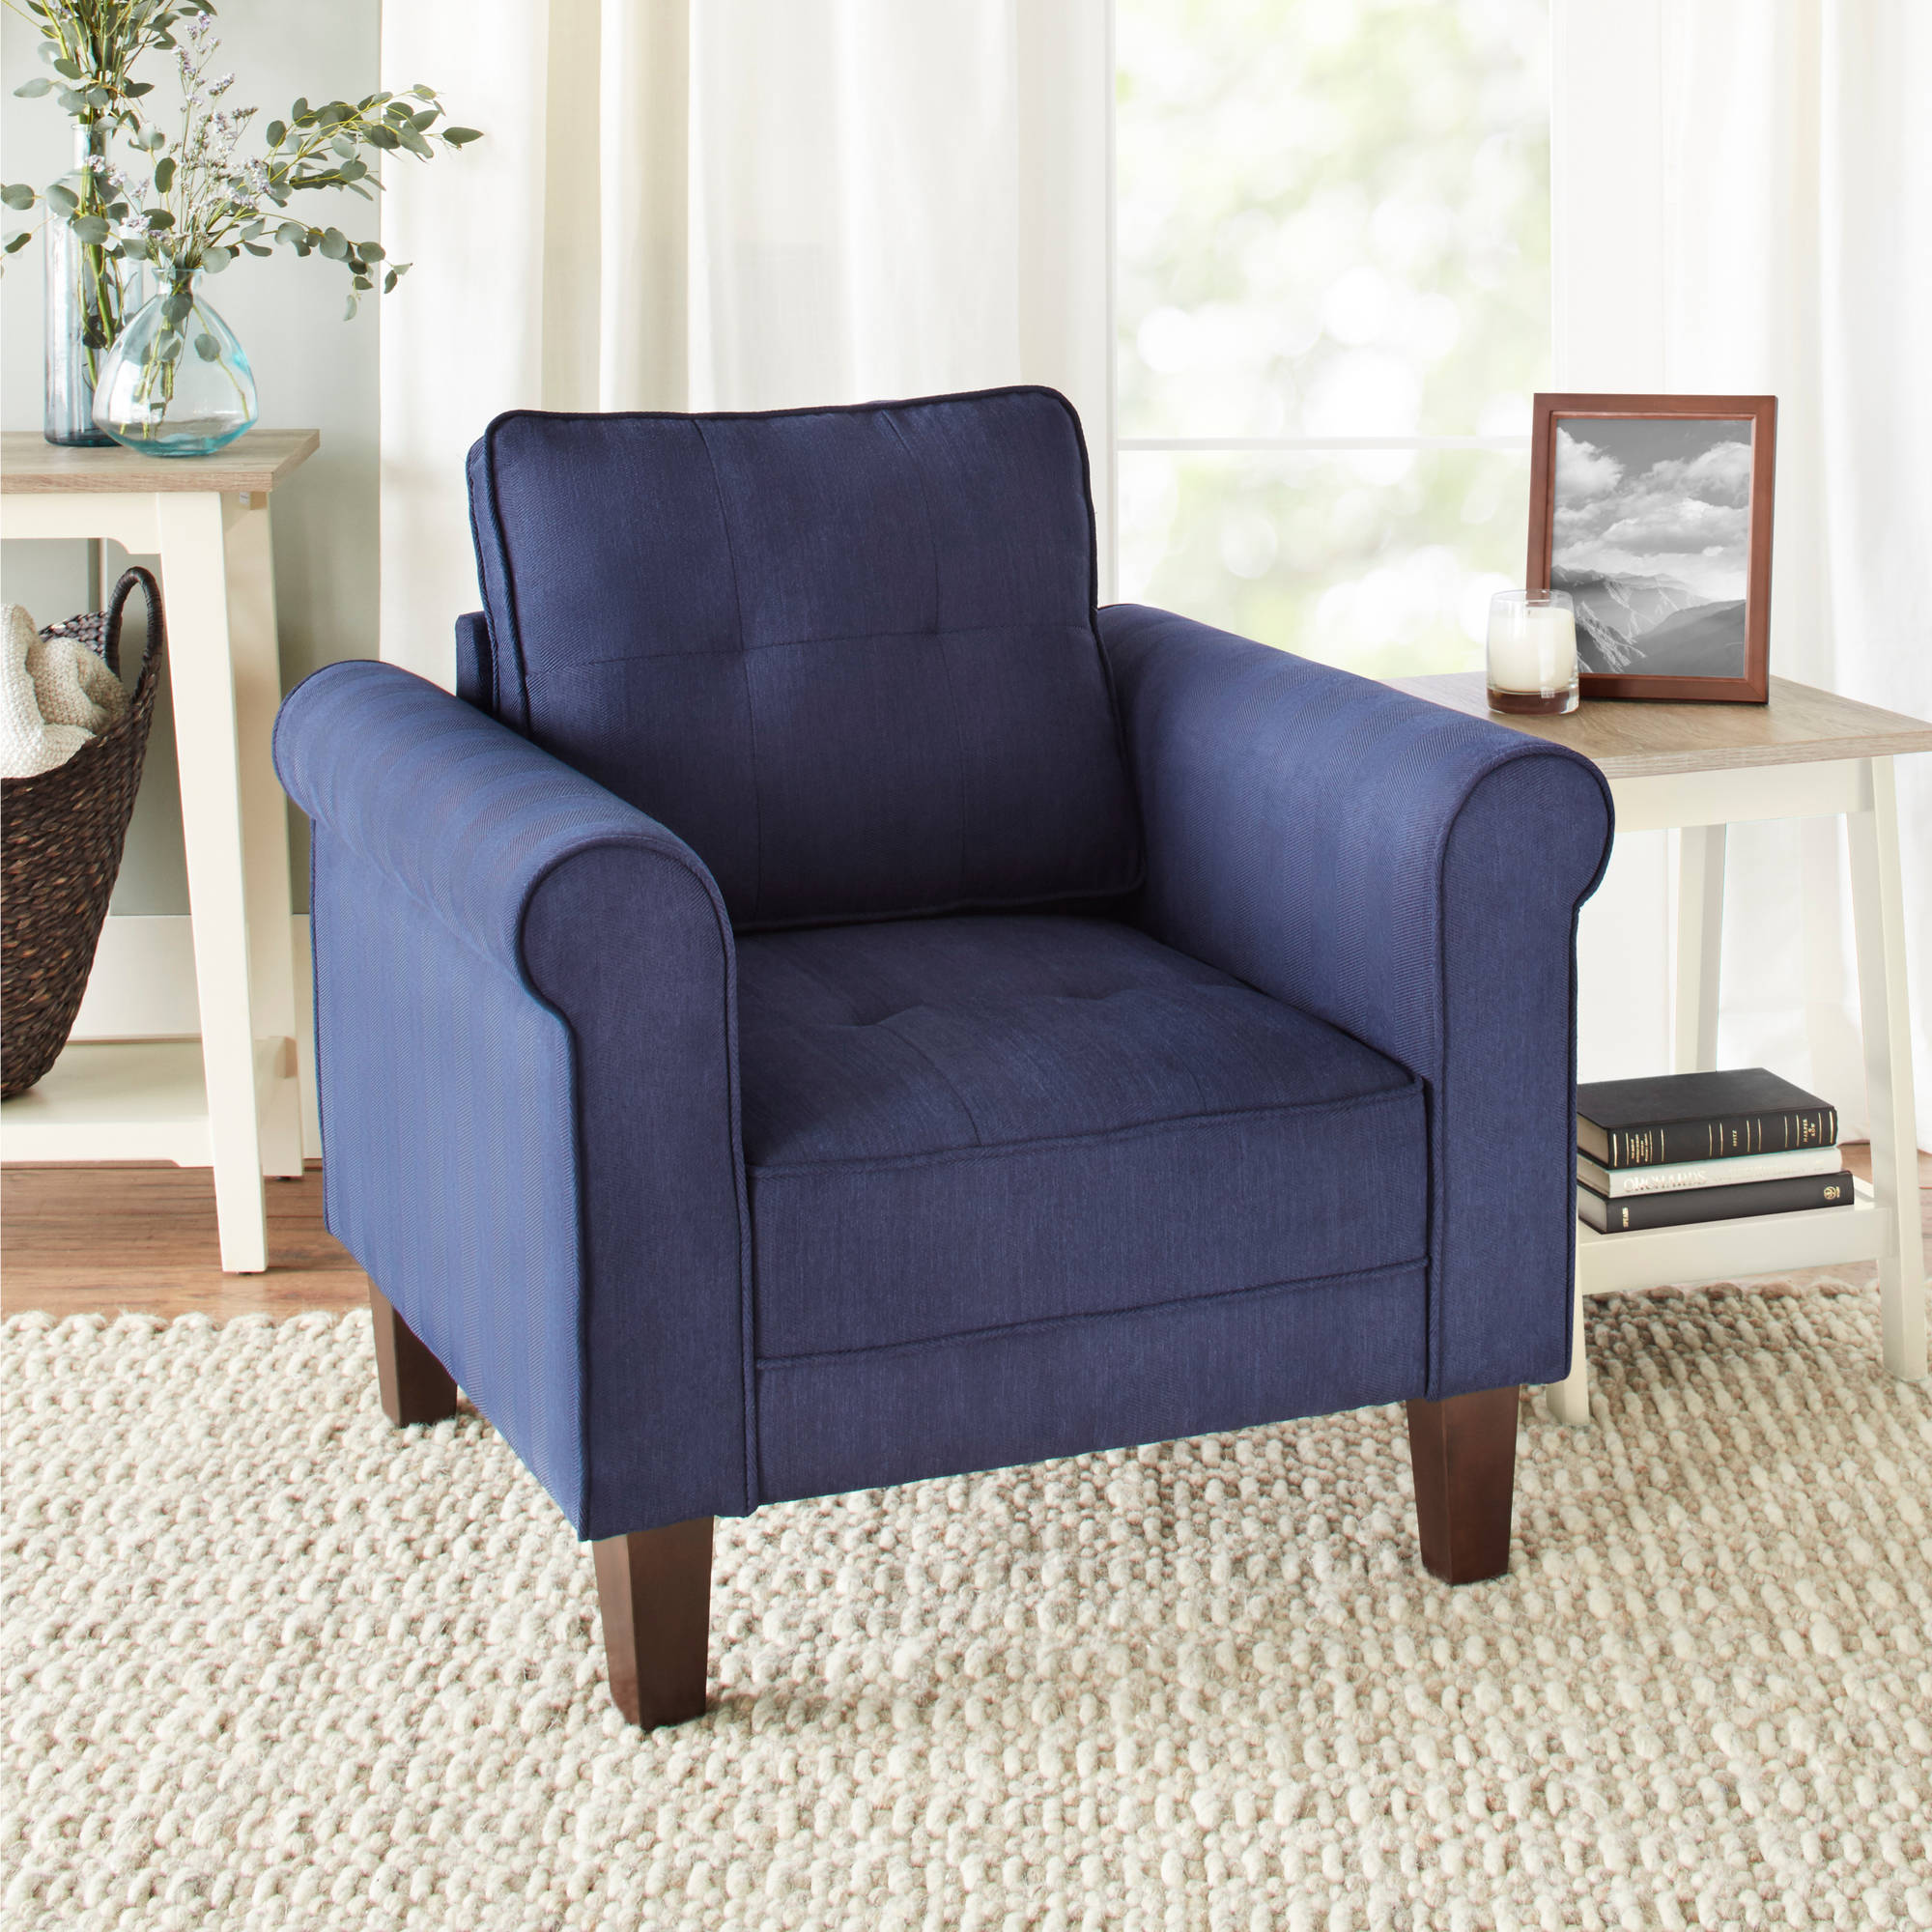 10 Spring Street Ashton Microfiber Lounge Chair by